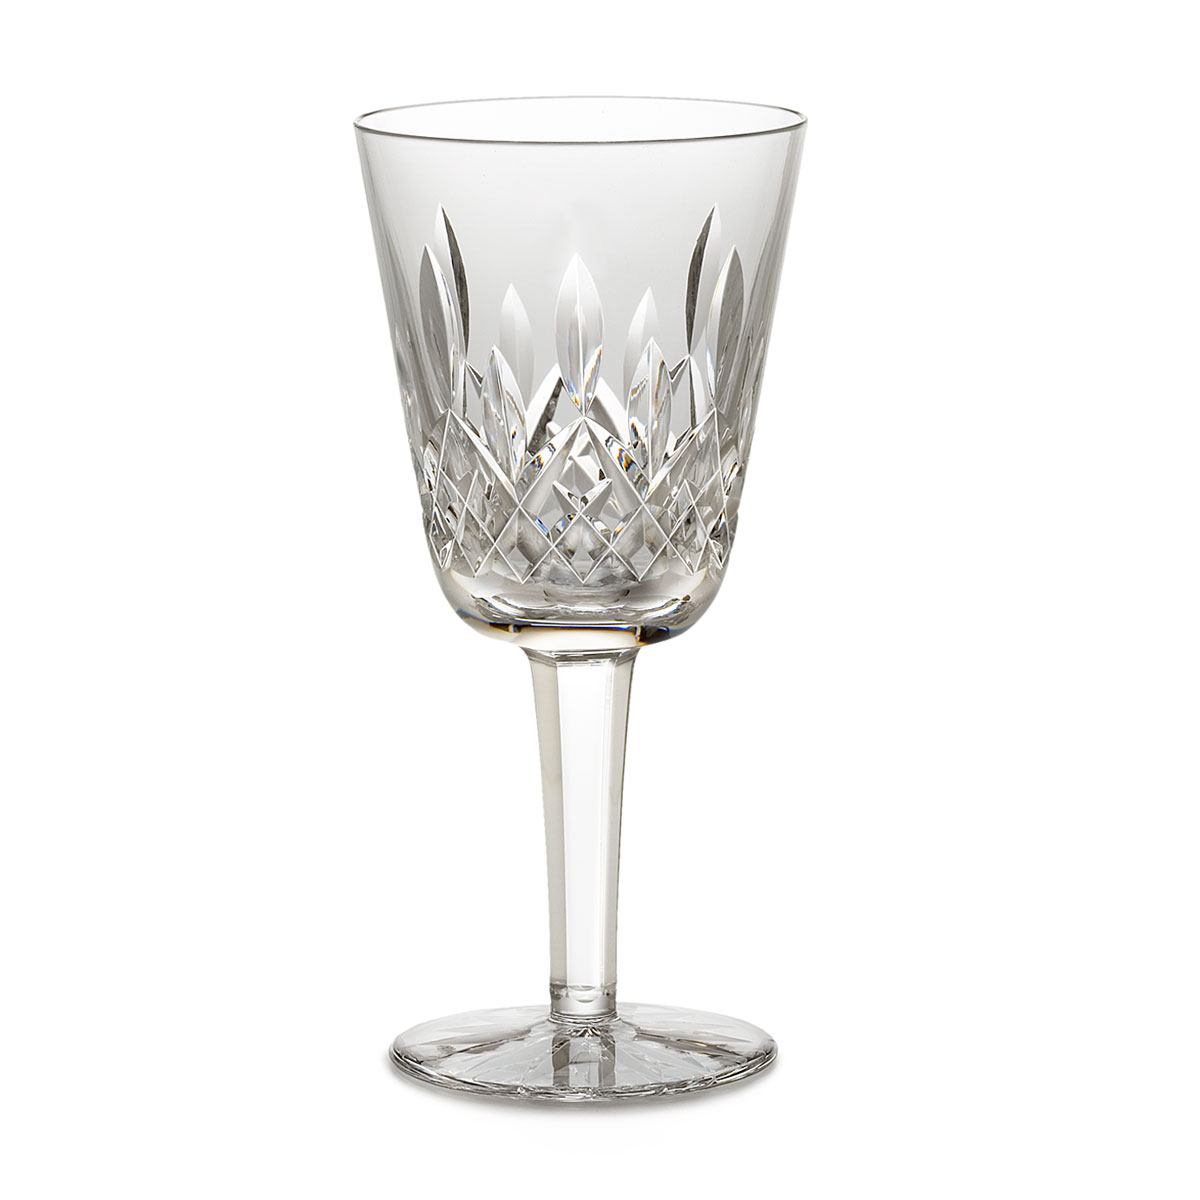 Waterford Crystal, Lismore Classic White Wine, Single